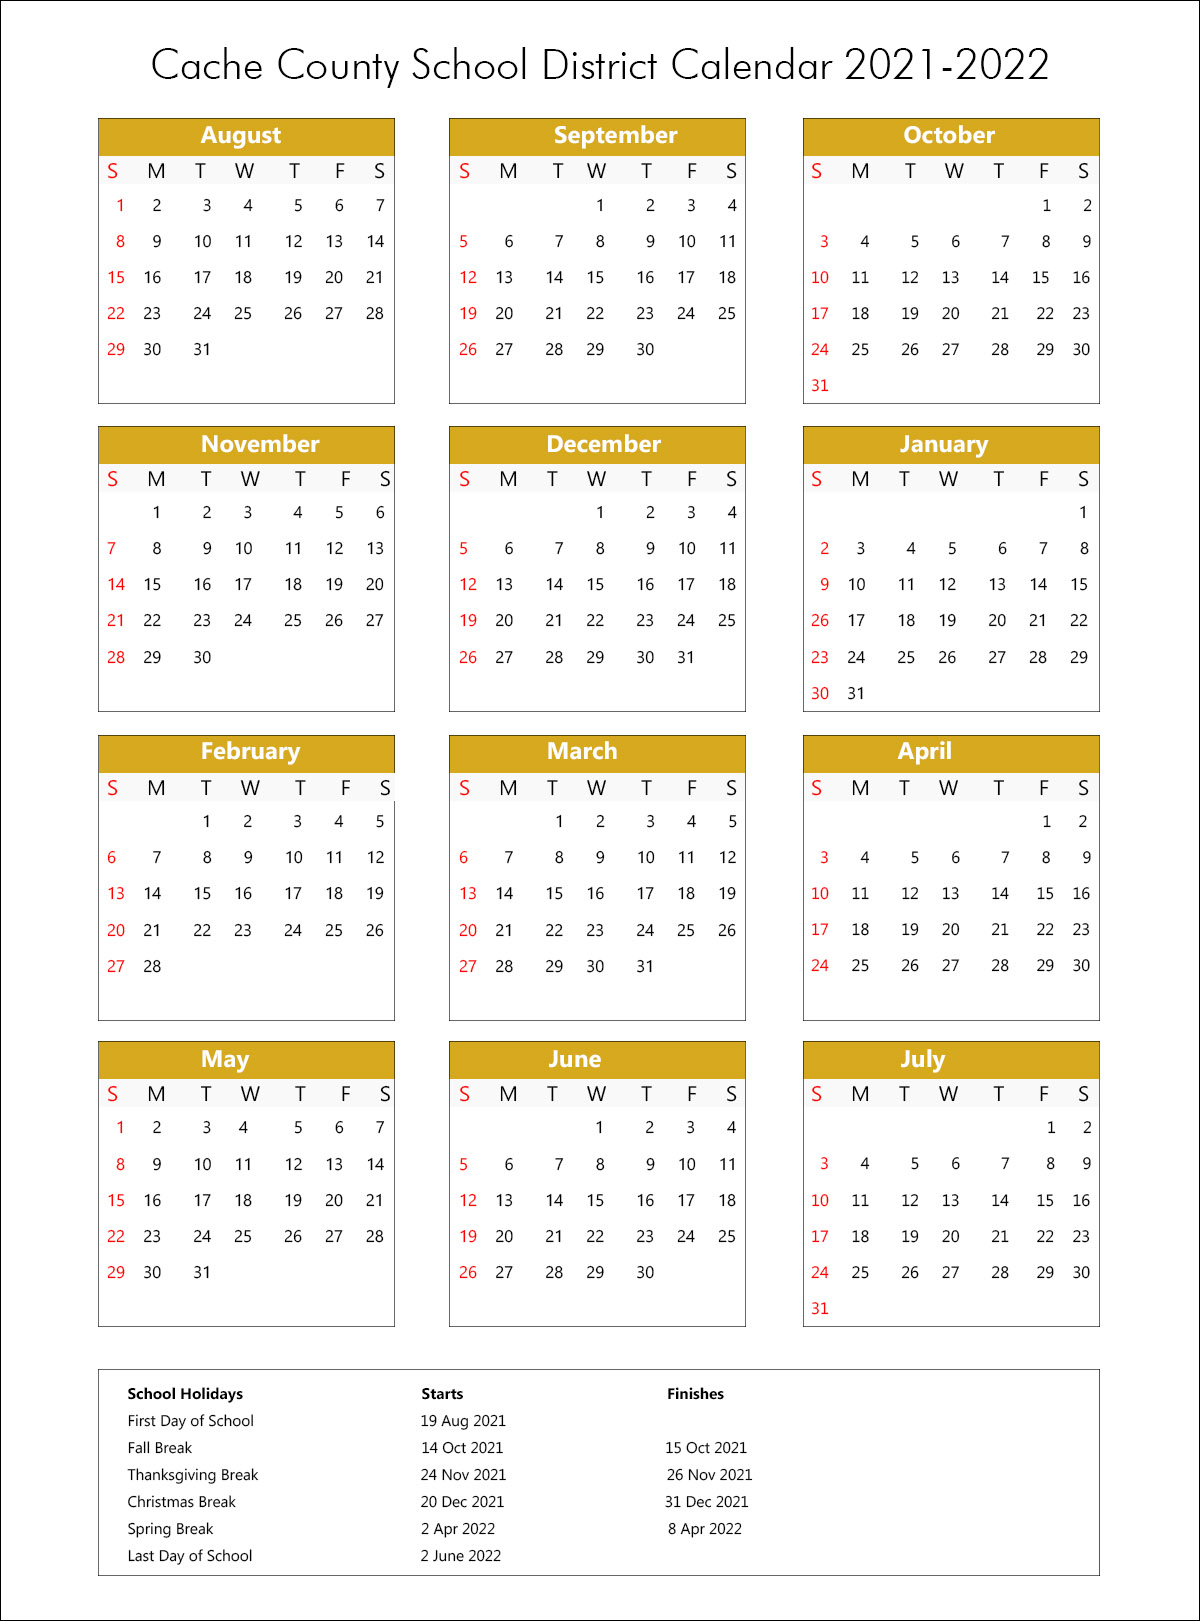 Cache County School District Calendar 2021